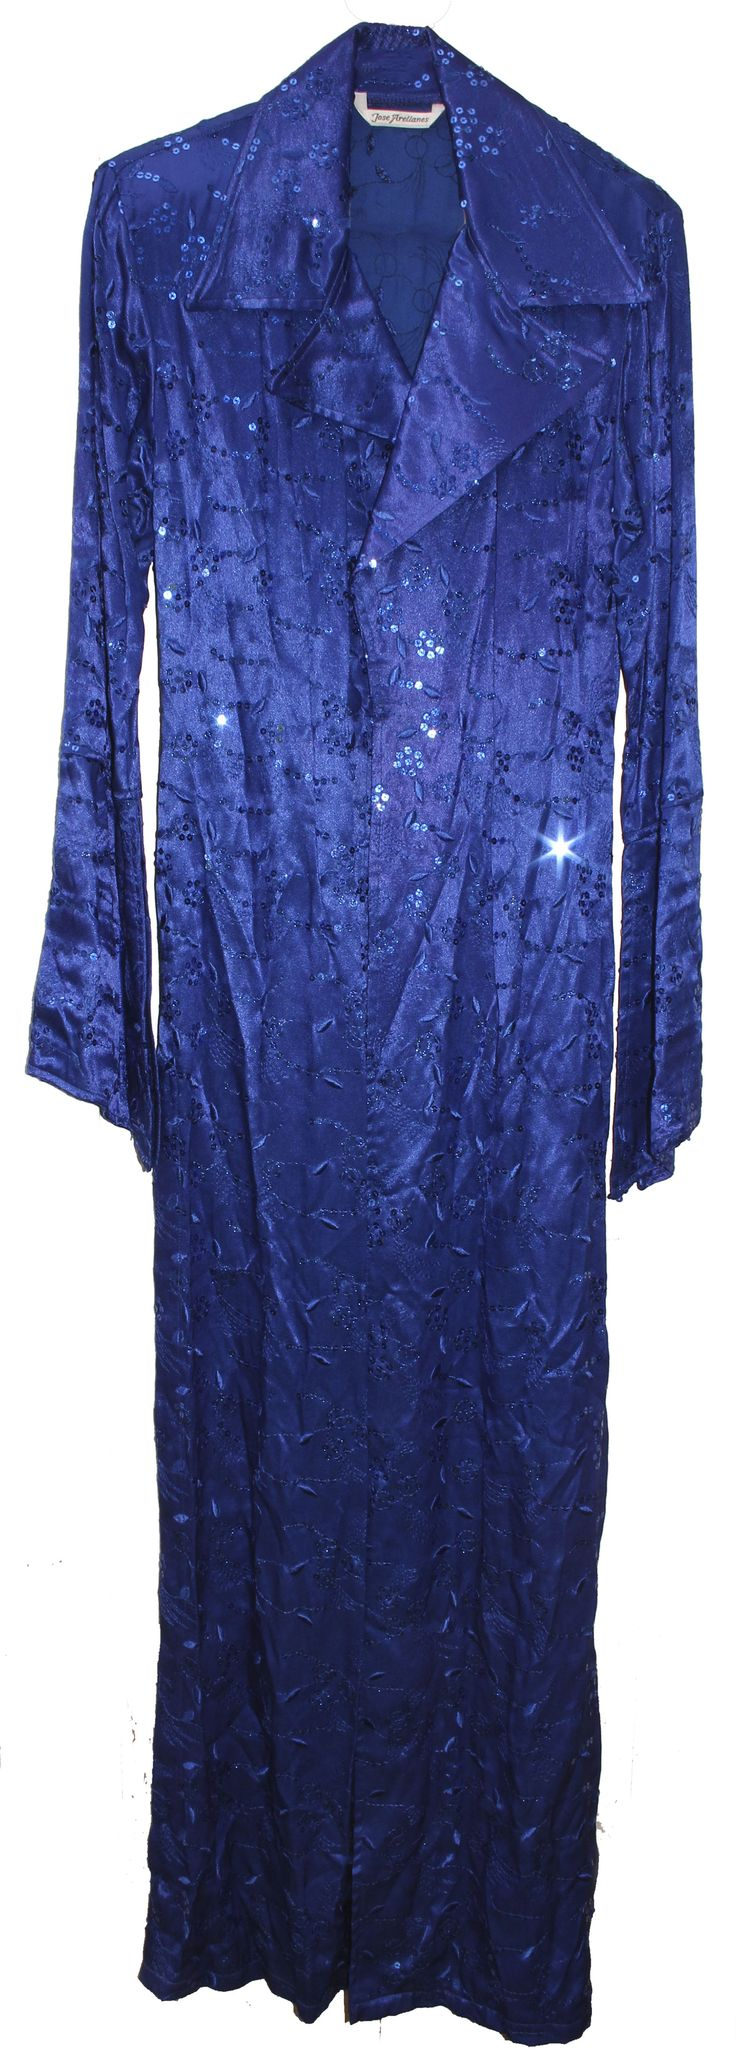 Electric blue sequined stage jacket personally worn by Prince. Designed by Jose Arellanes, the lo